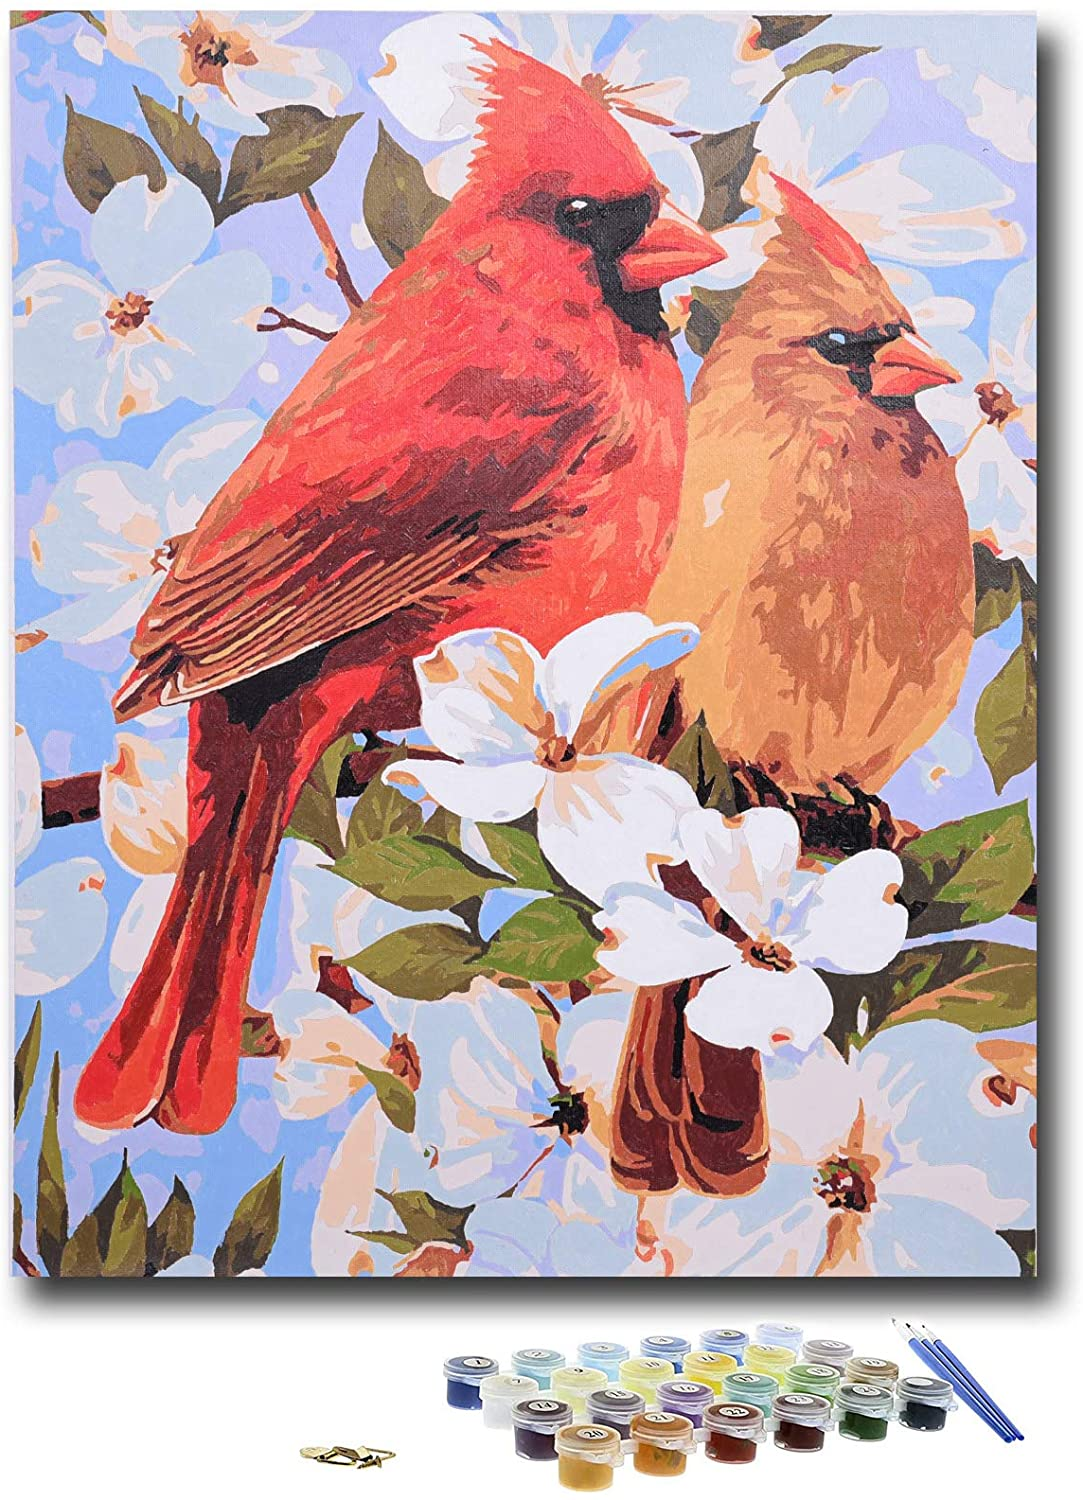 KLIERWOY Paint by Numbers for Adults - DIY Oil Paint Beginner Kit Art Canvas Set 16x20 inch (Without Frame) Red Cardinal Birds Animal